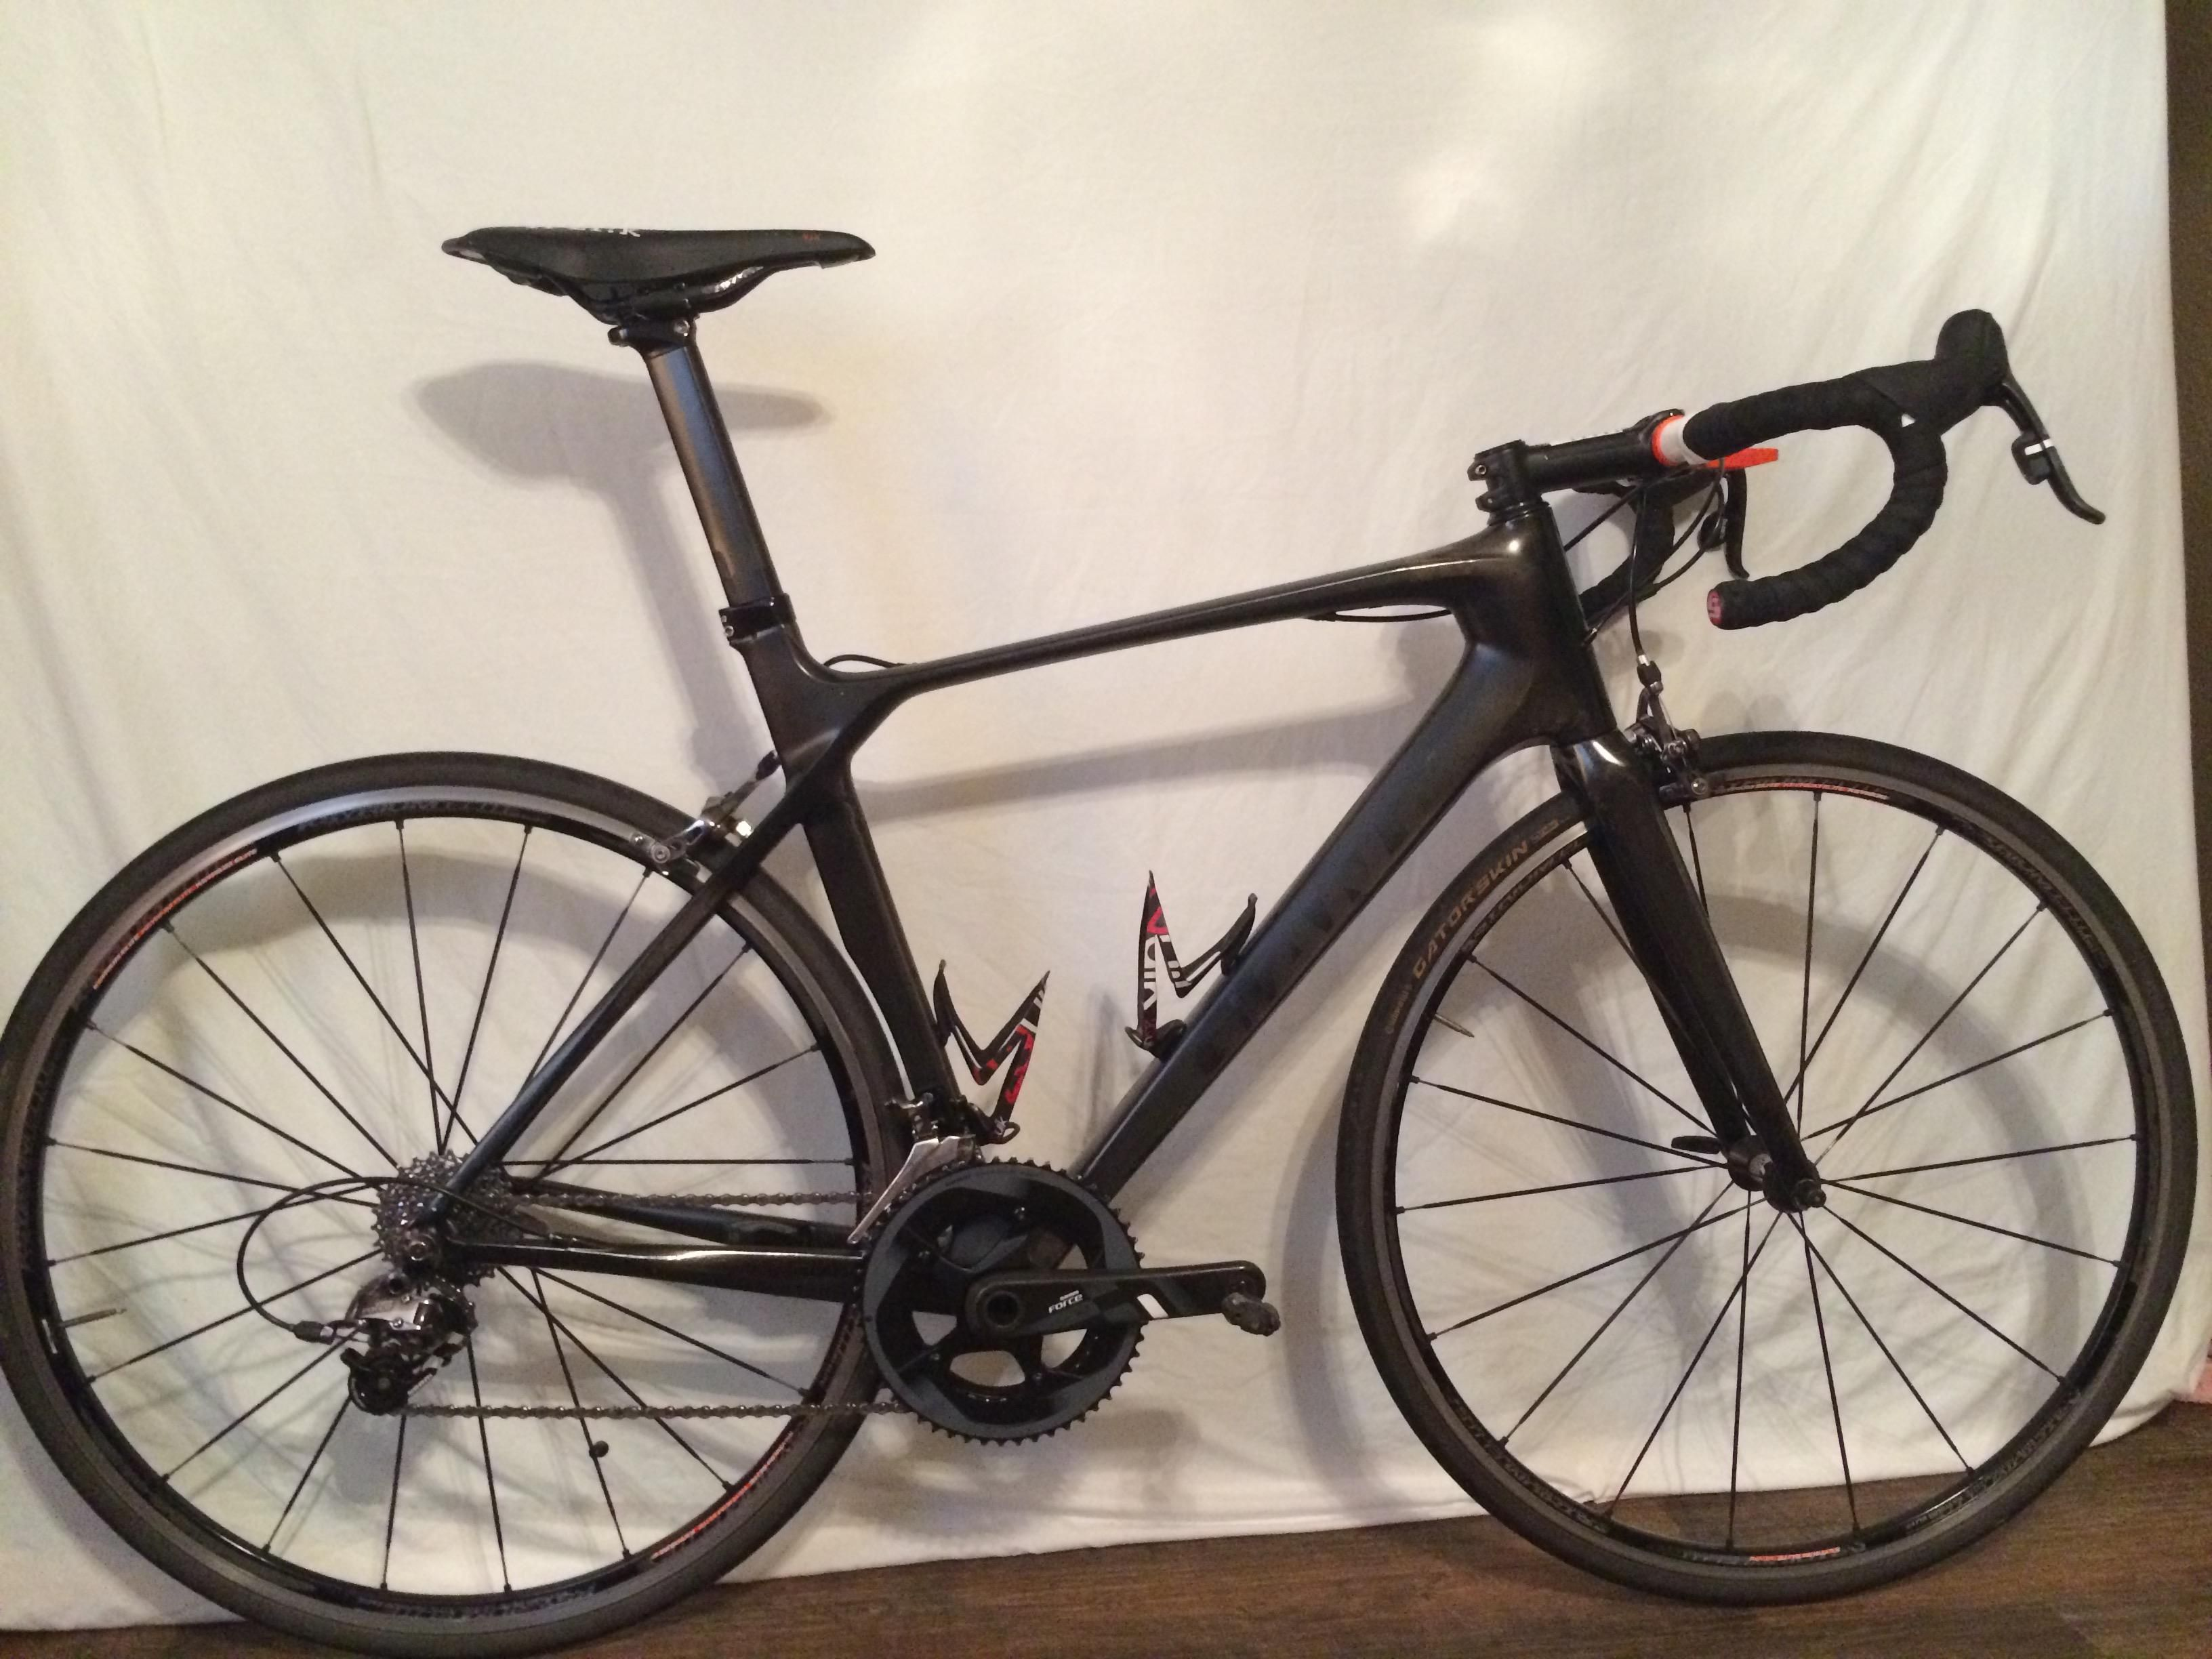 c4e6ccc70be Giant TCR Advanced LE w/ SRAM Force 22 and Mavic Ksyriums - Limited Edition  $1800.00 Subcategory: road Size: Medium/Large Manufacturer: giant  Condition: ...